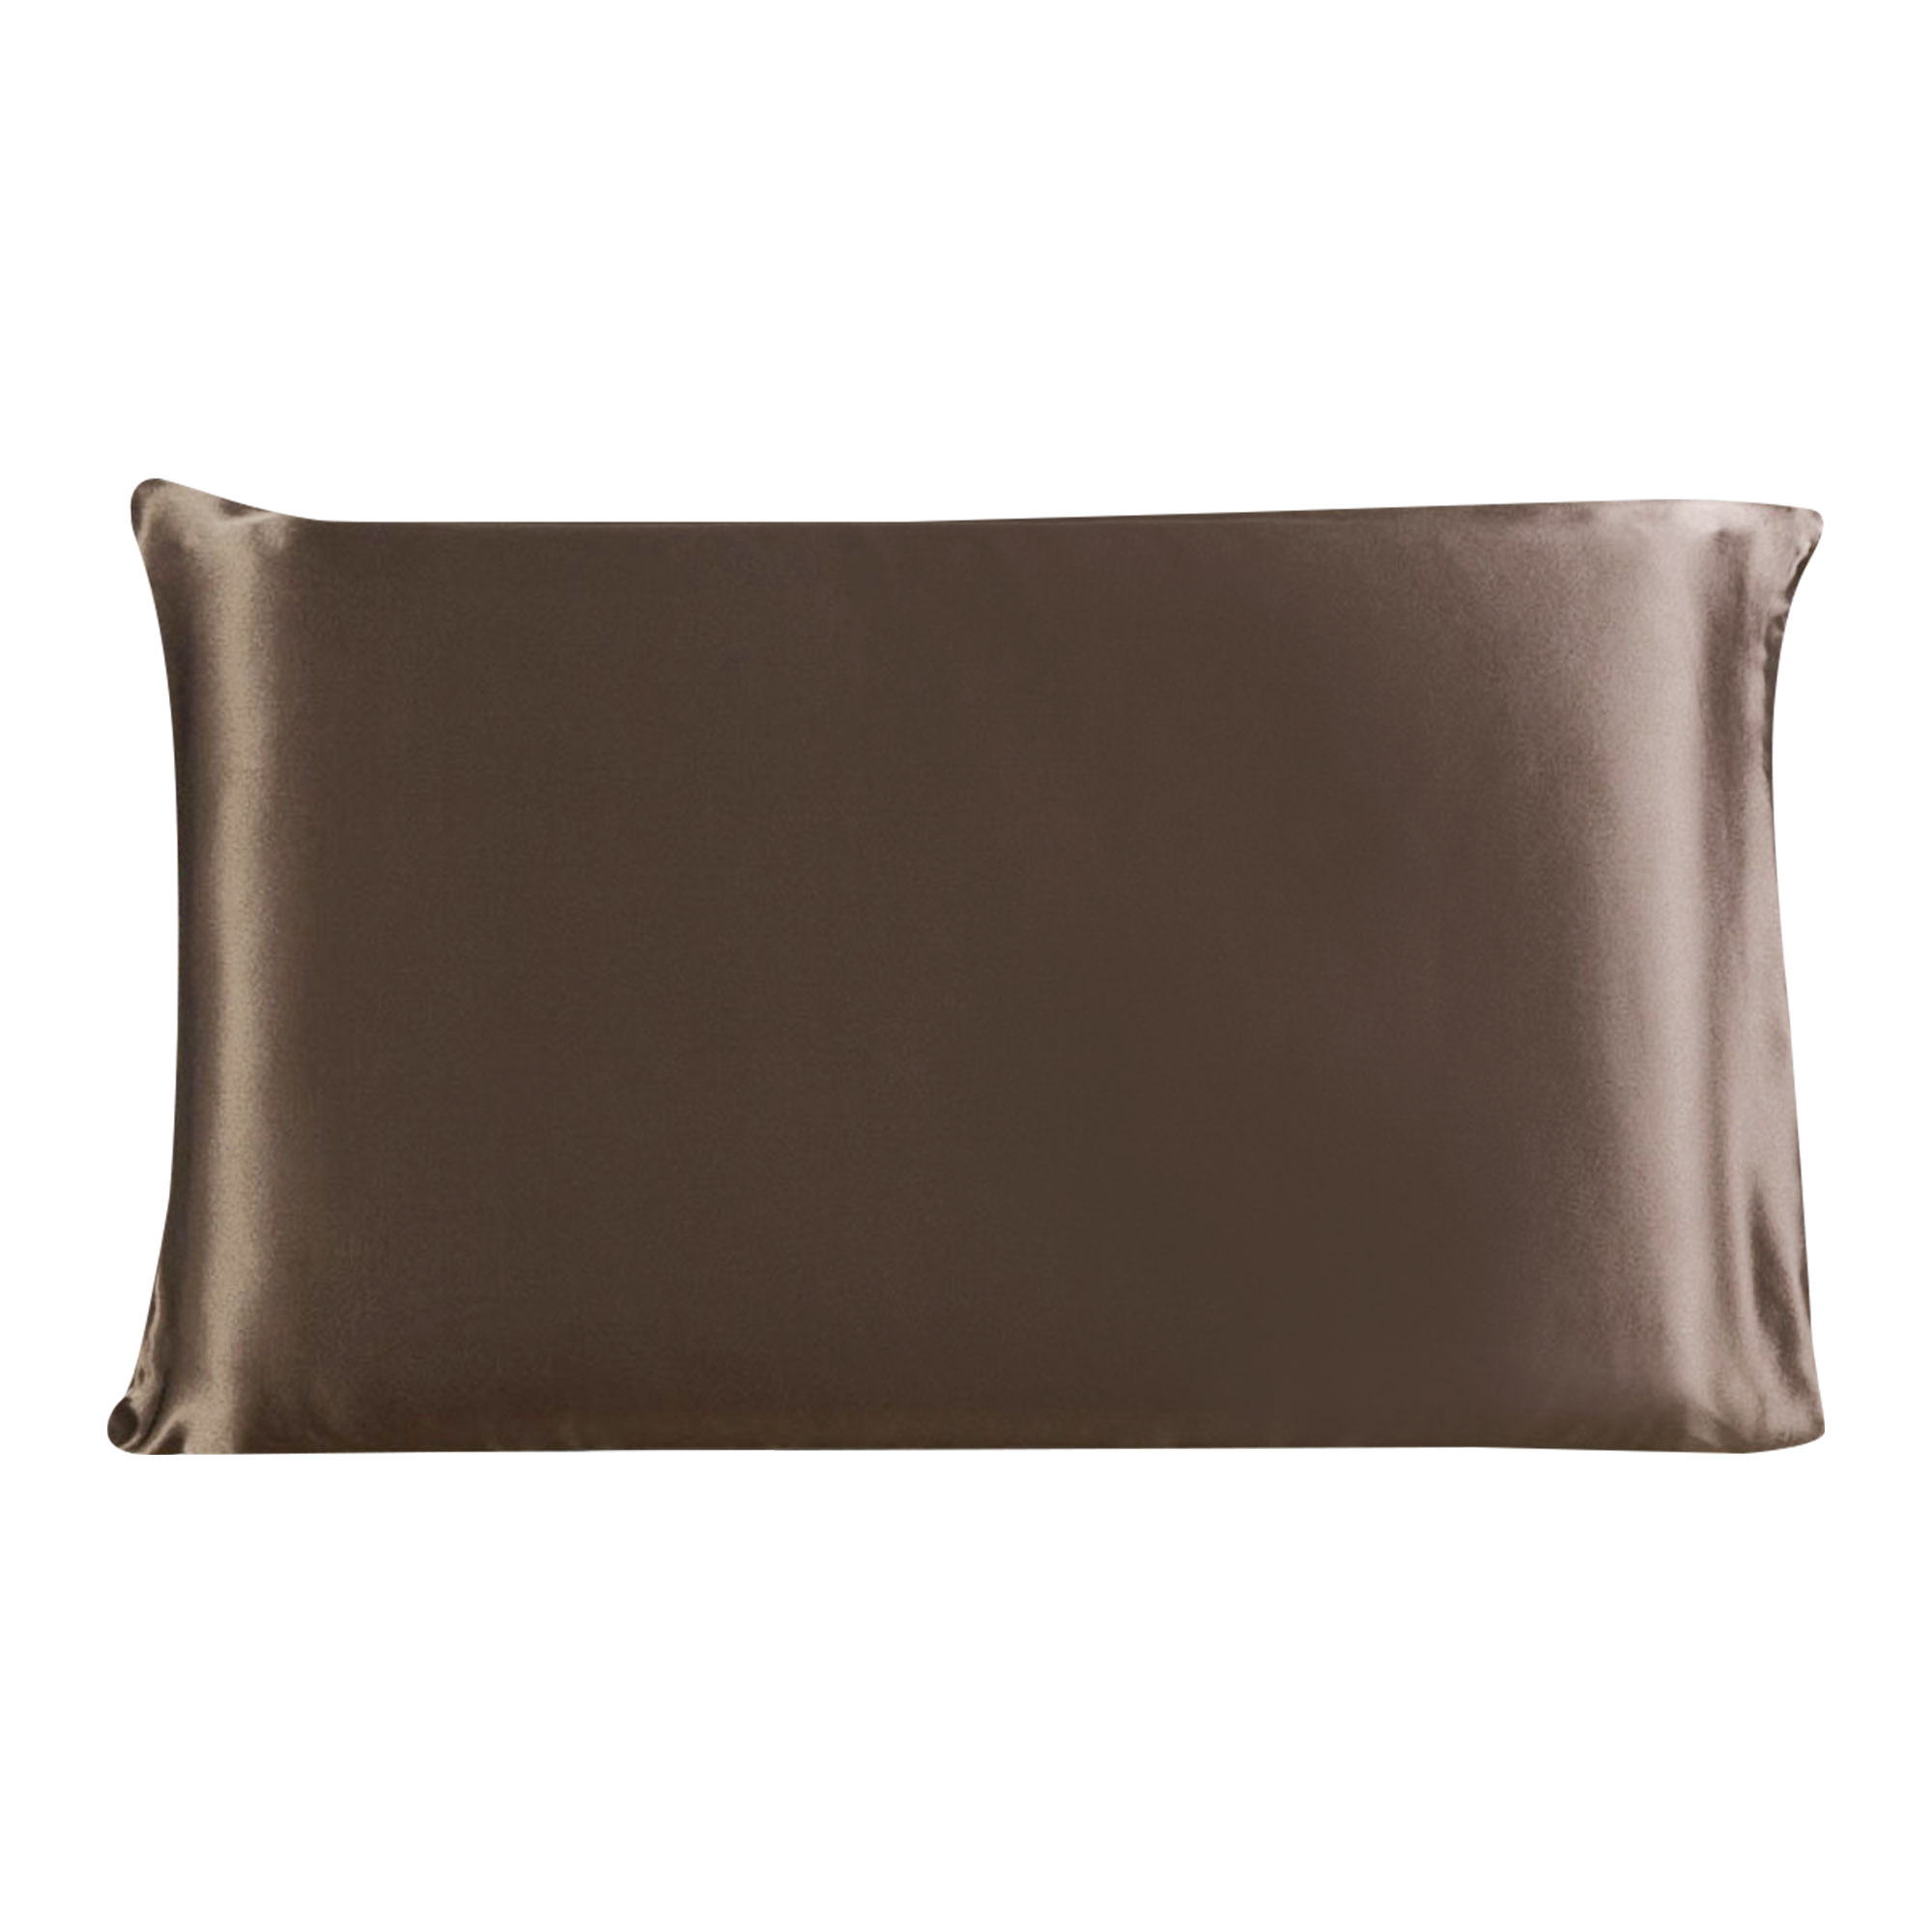 100% Mulberry Silk Fabric Pillow Case Cover Pillowcase Coffee Color King Size